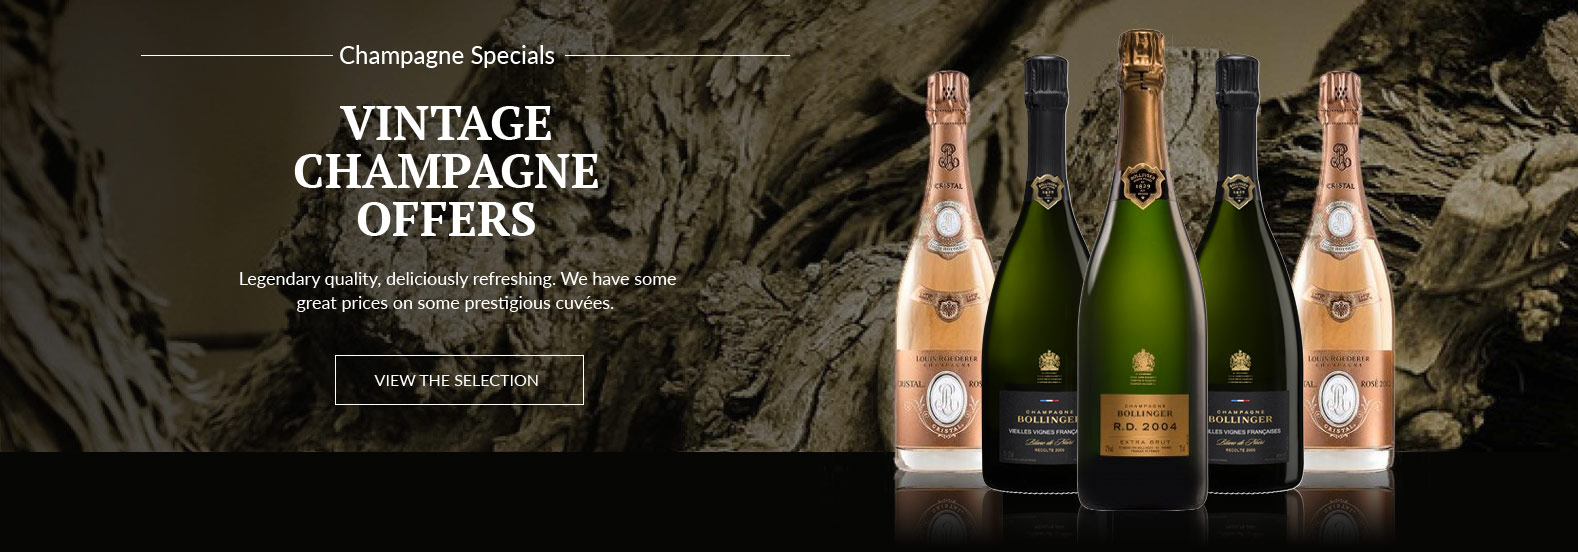 Image of vintage champagne bottles in front of a dramatic scene of ancient, curled wood.